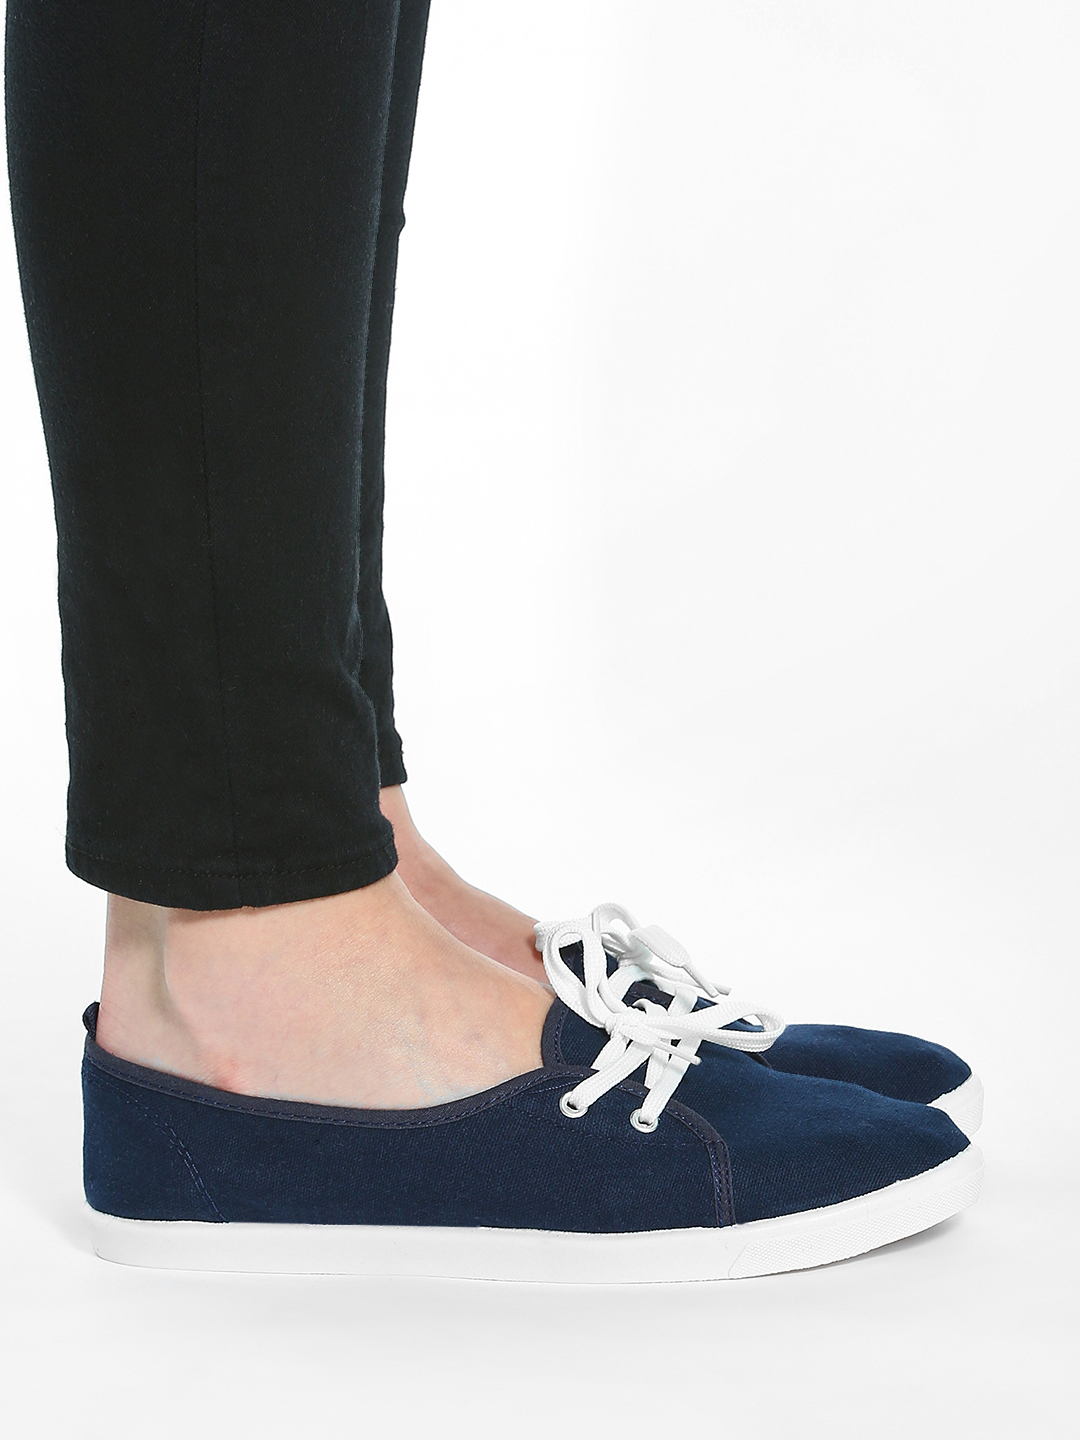 KOOVS Navy Plimsoll Lace-Up Shoes 1